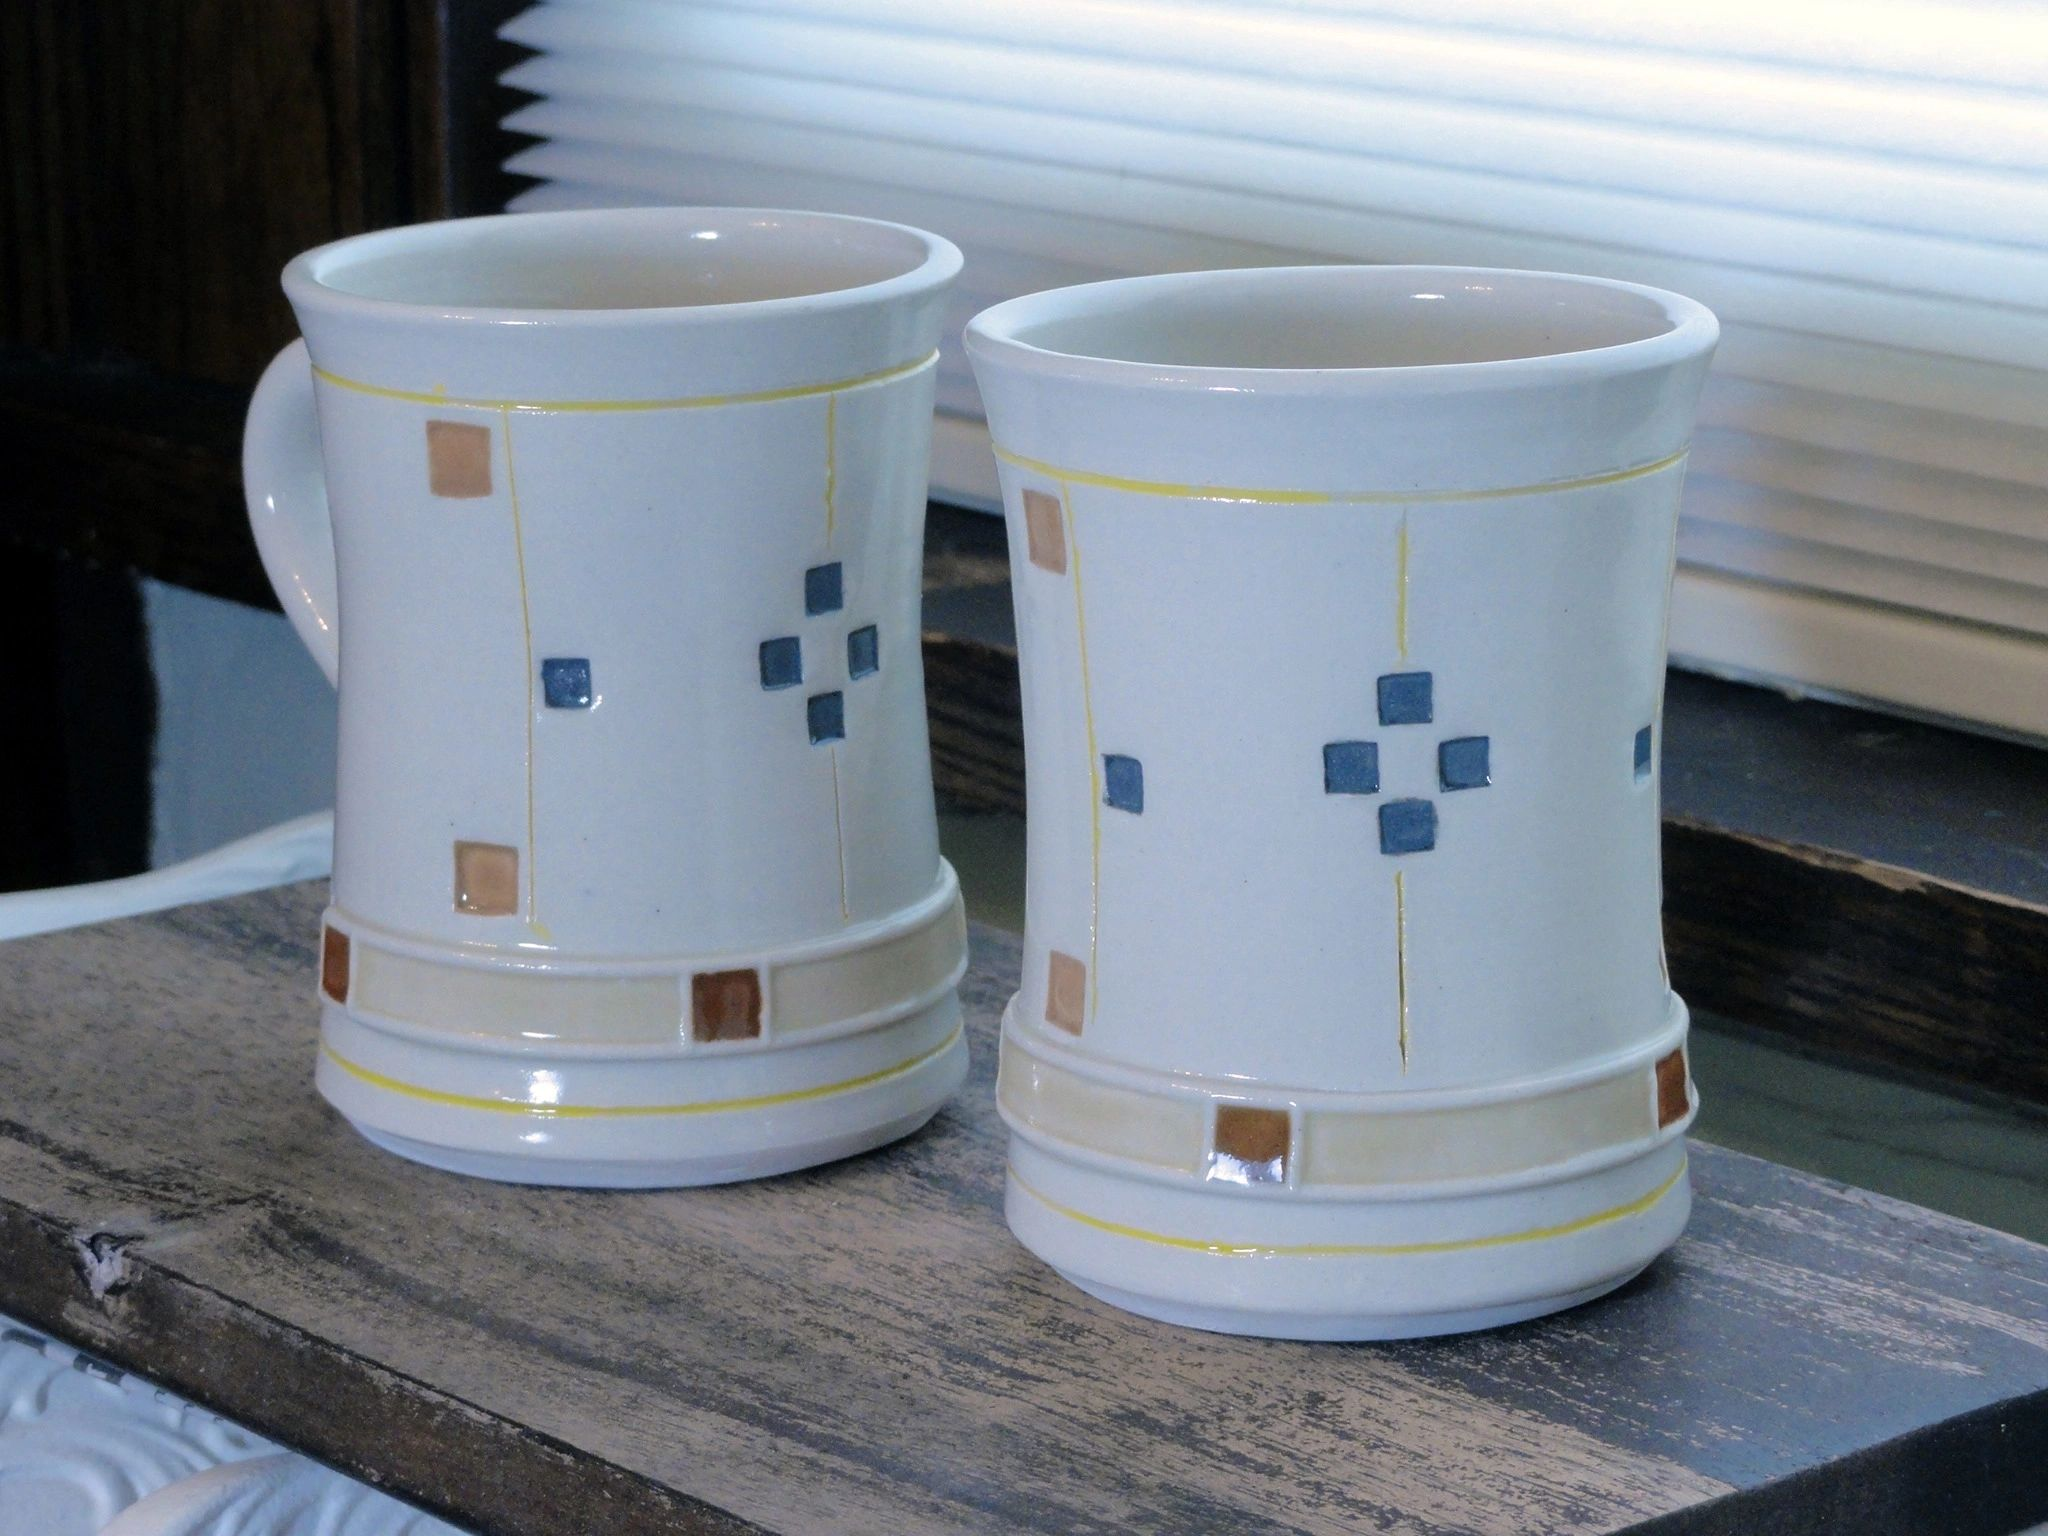 Two Prairie Olive mugs in porcelain. 8 ounces each. Dishwasher and microwave safe.